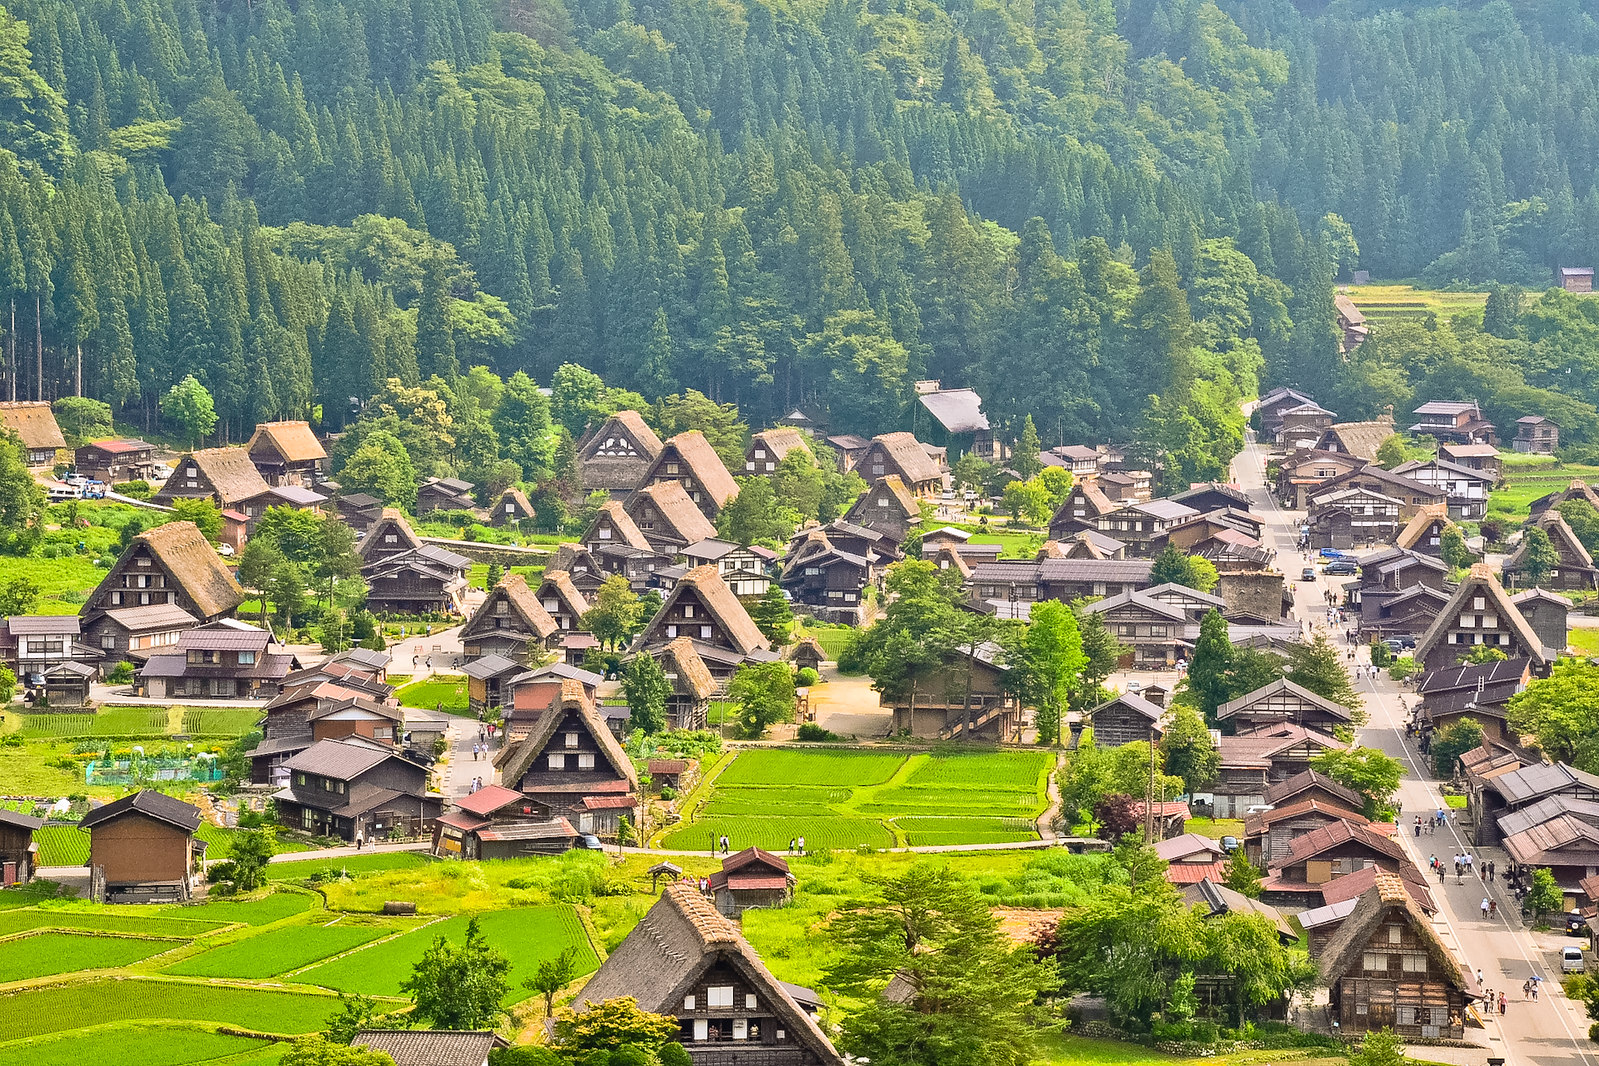 Visiting Shirakawa Gō Amp Staying The Night In A Traditional